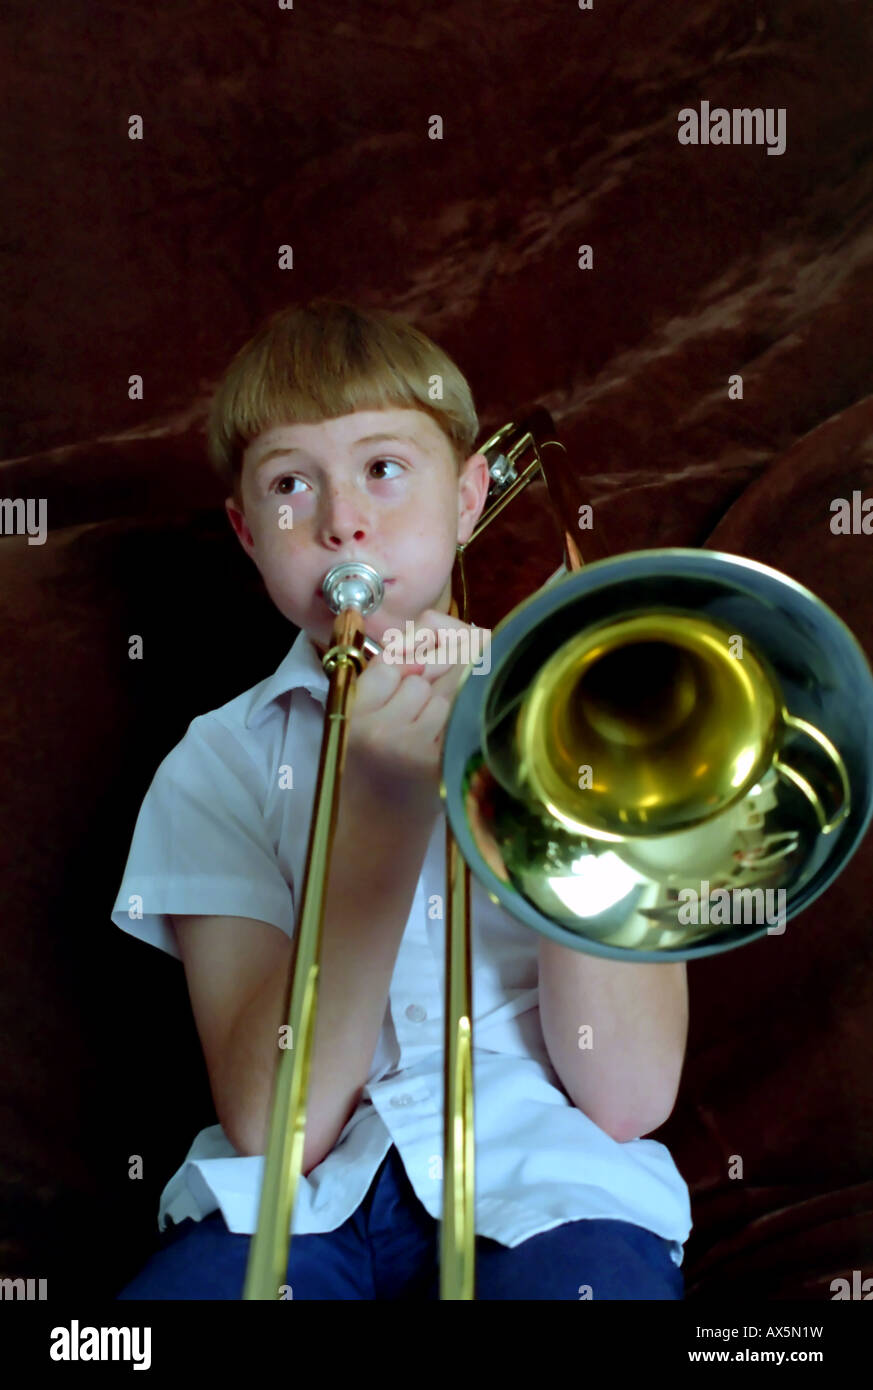 An 11 year old boy playing, or trying to play, the trombone. The musical instrument is almost bigger than he is. Stock Photo